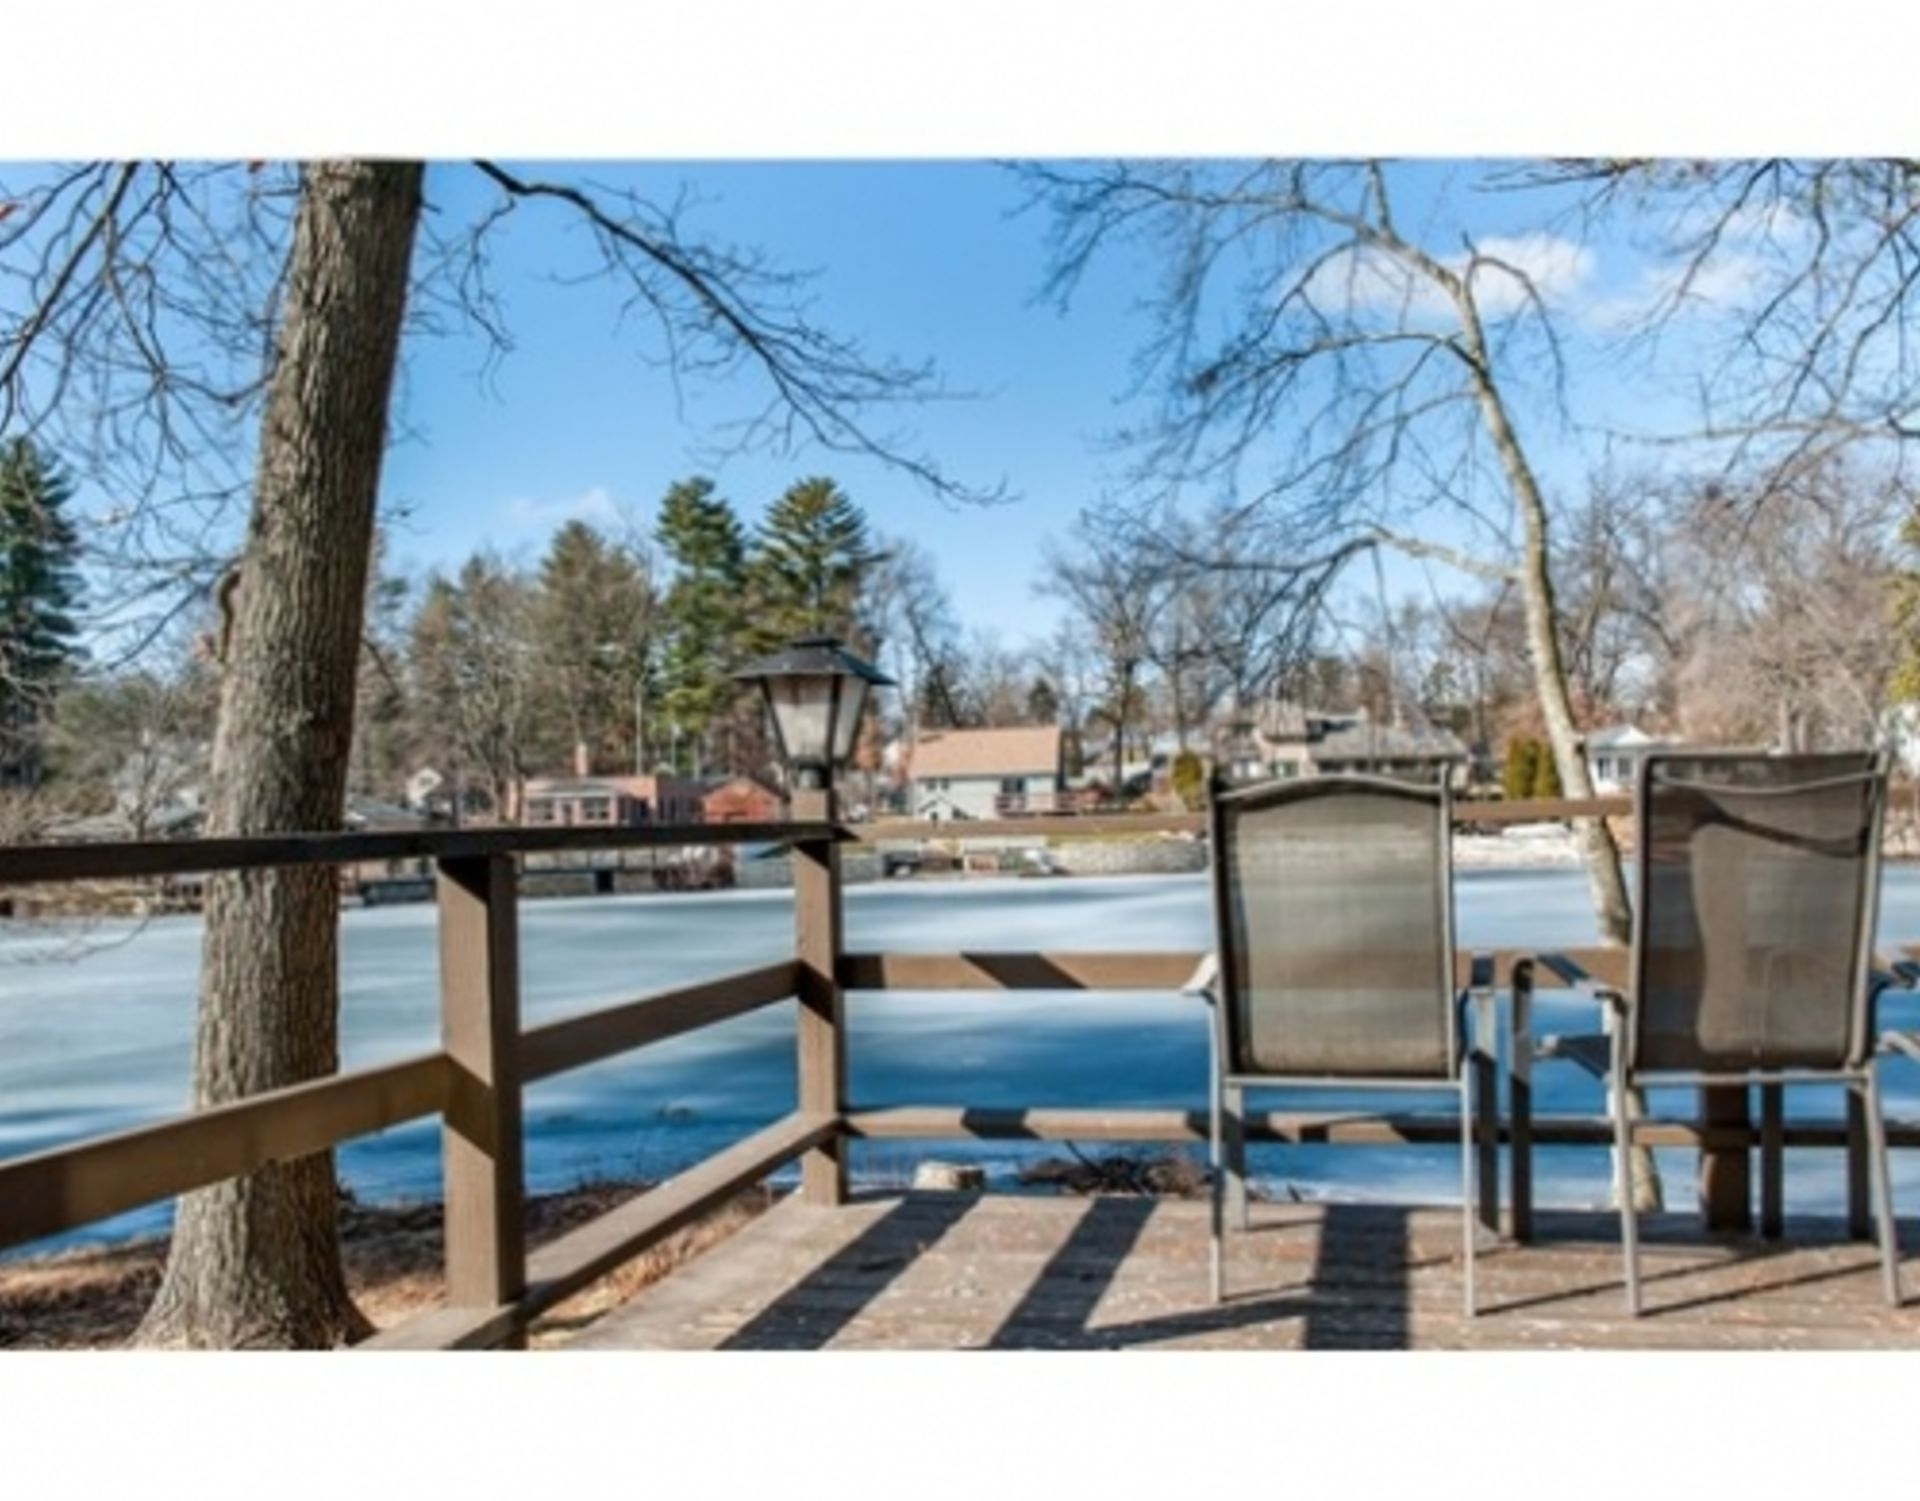 SOLD! 97 Cottage Rd., Enfield, CT 06082